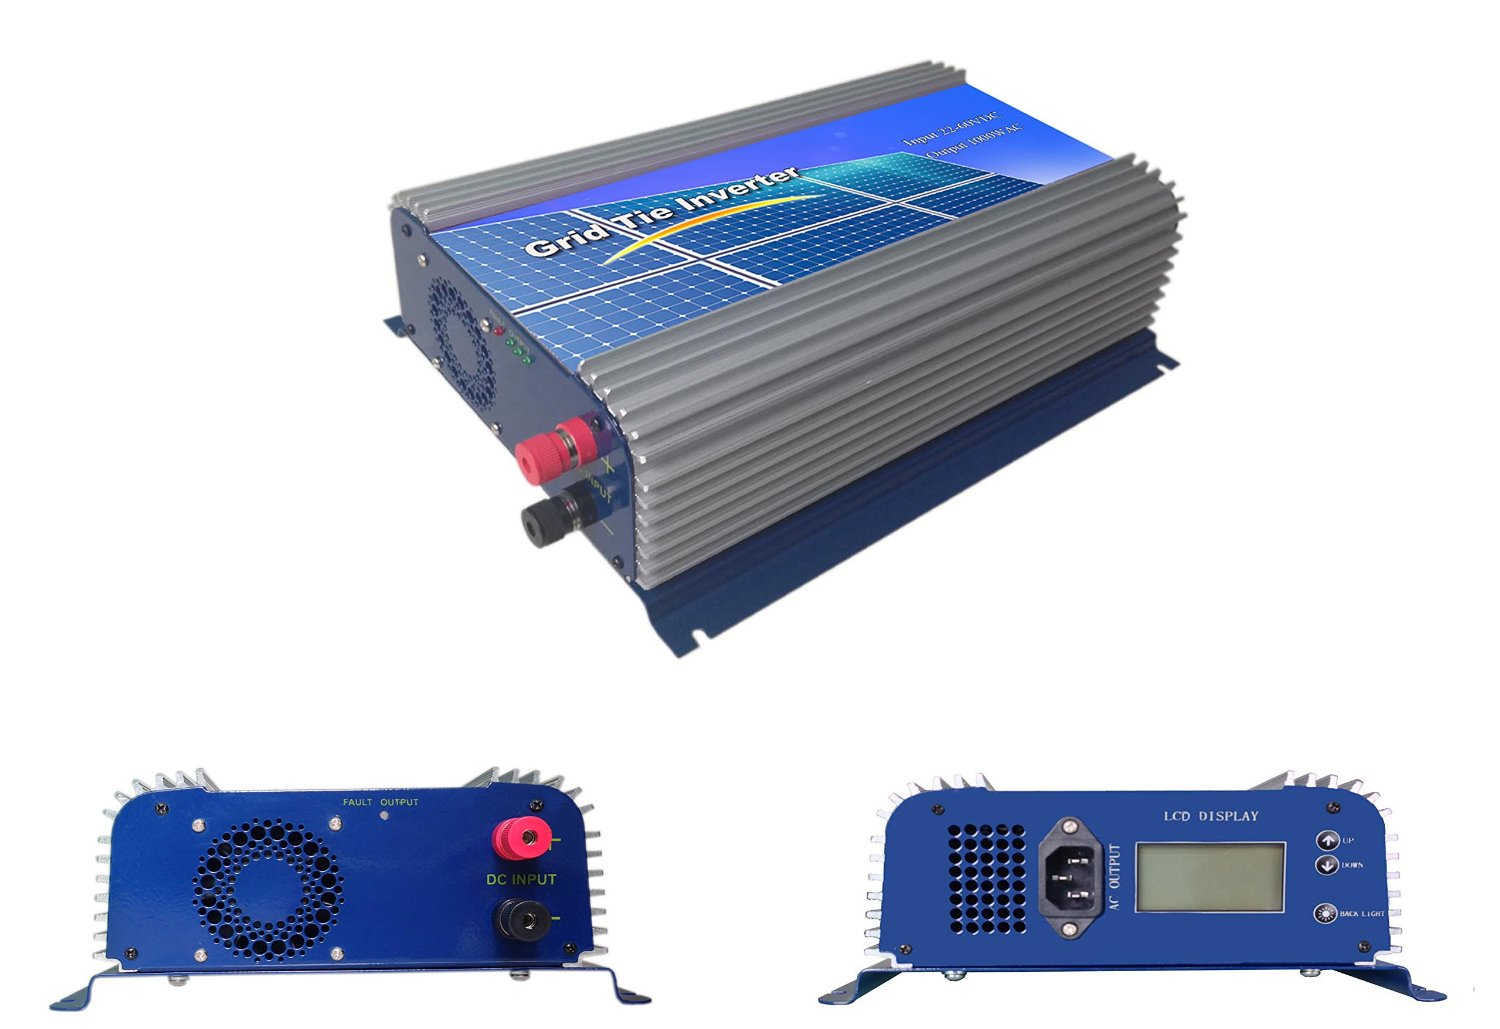 Decen 1500w High Efficiency LCD Display on Grid Tie Inverter Output Pure Sine Wave, 45-90vdc,110vac/ 220vac,60hz for Home Solar System